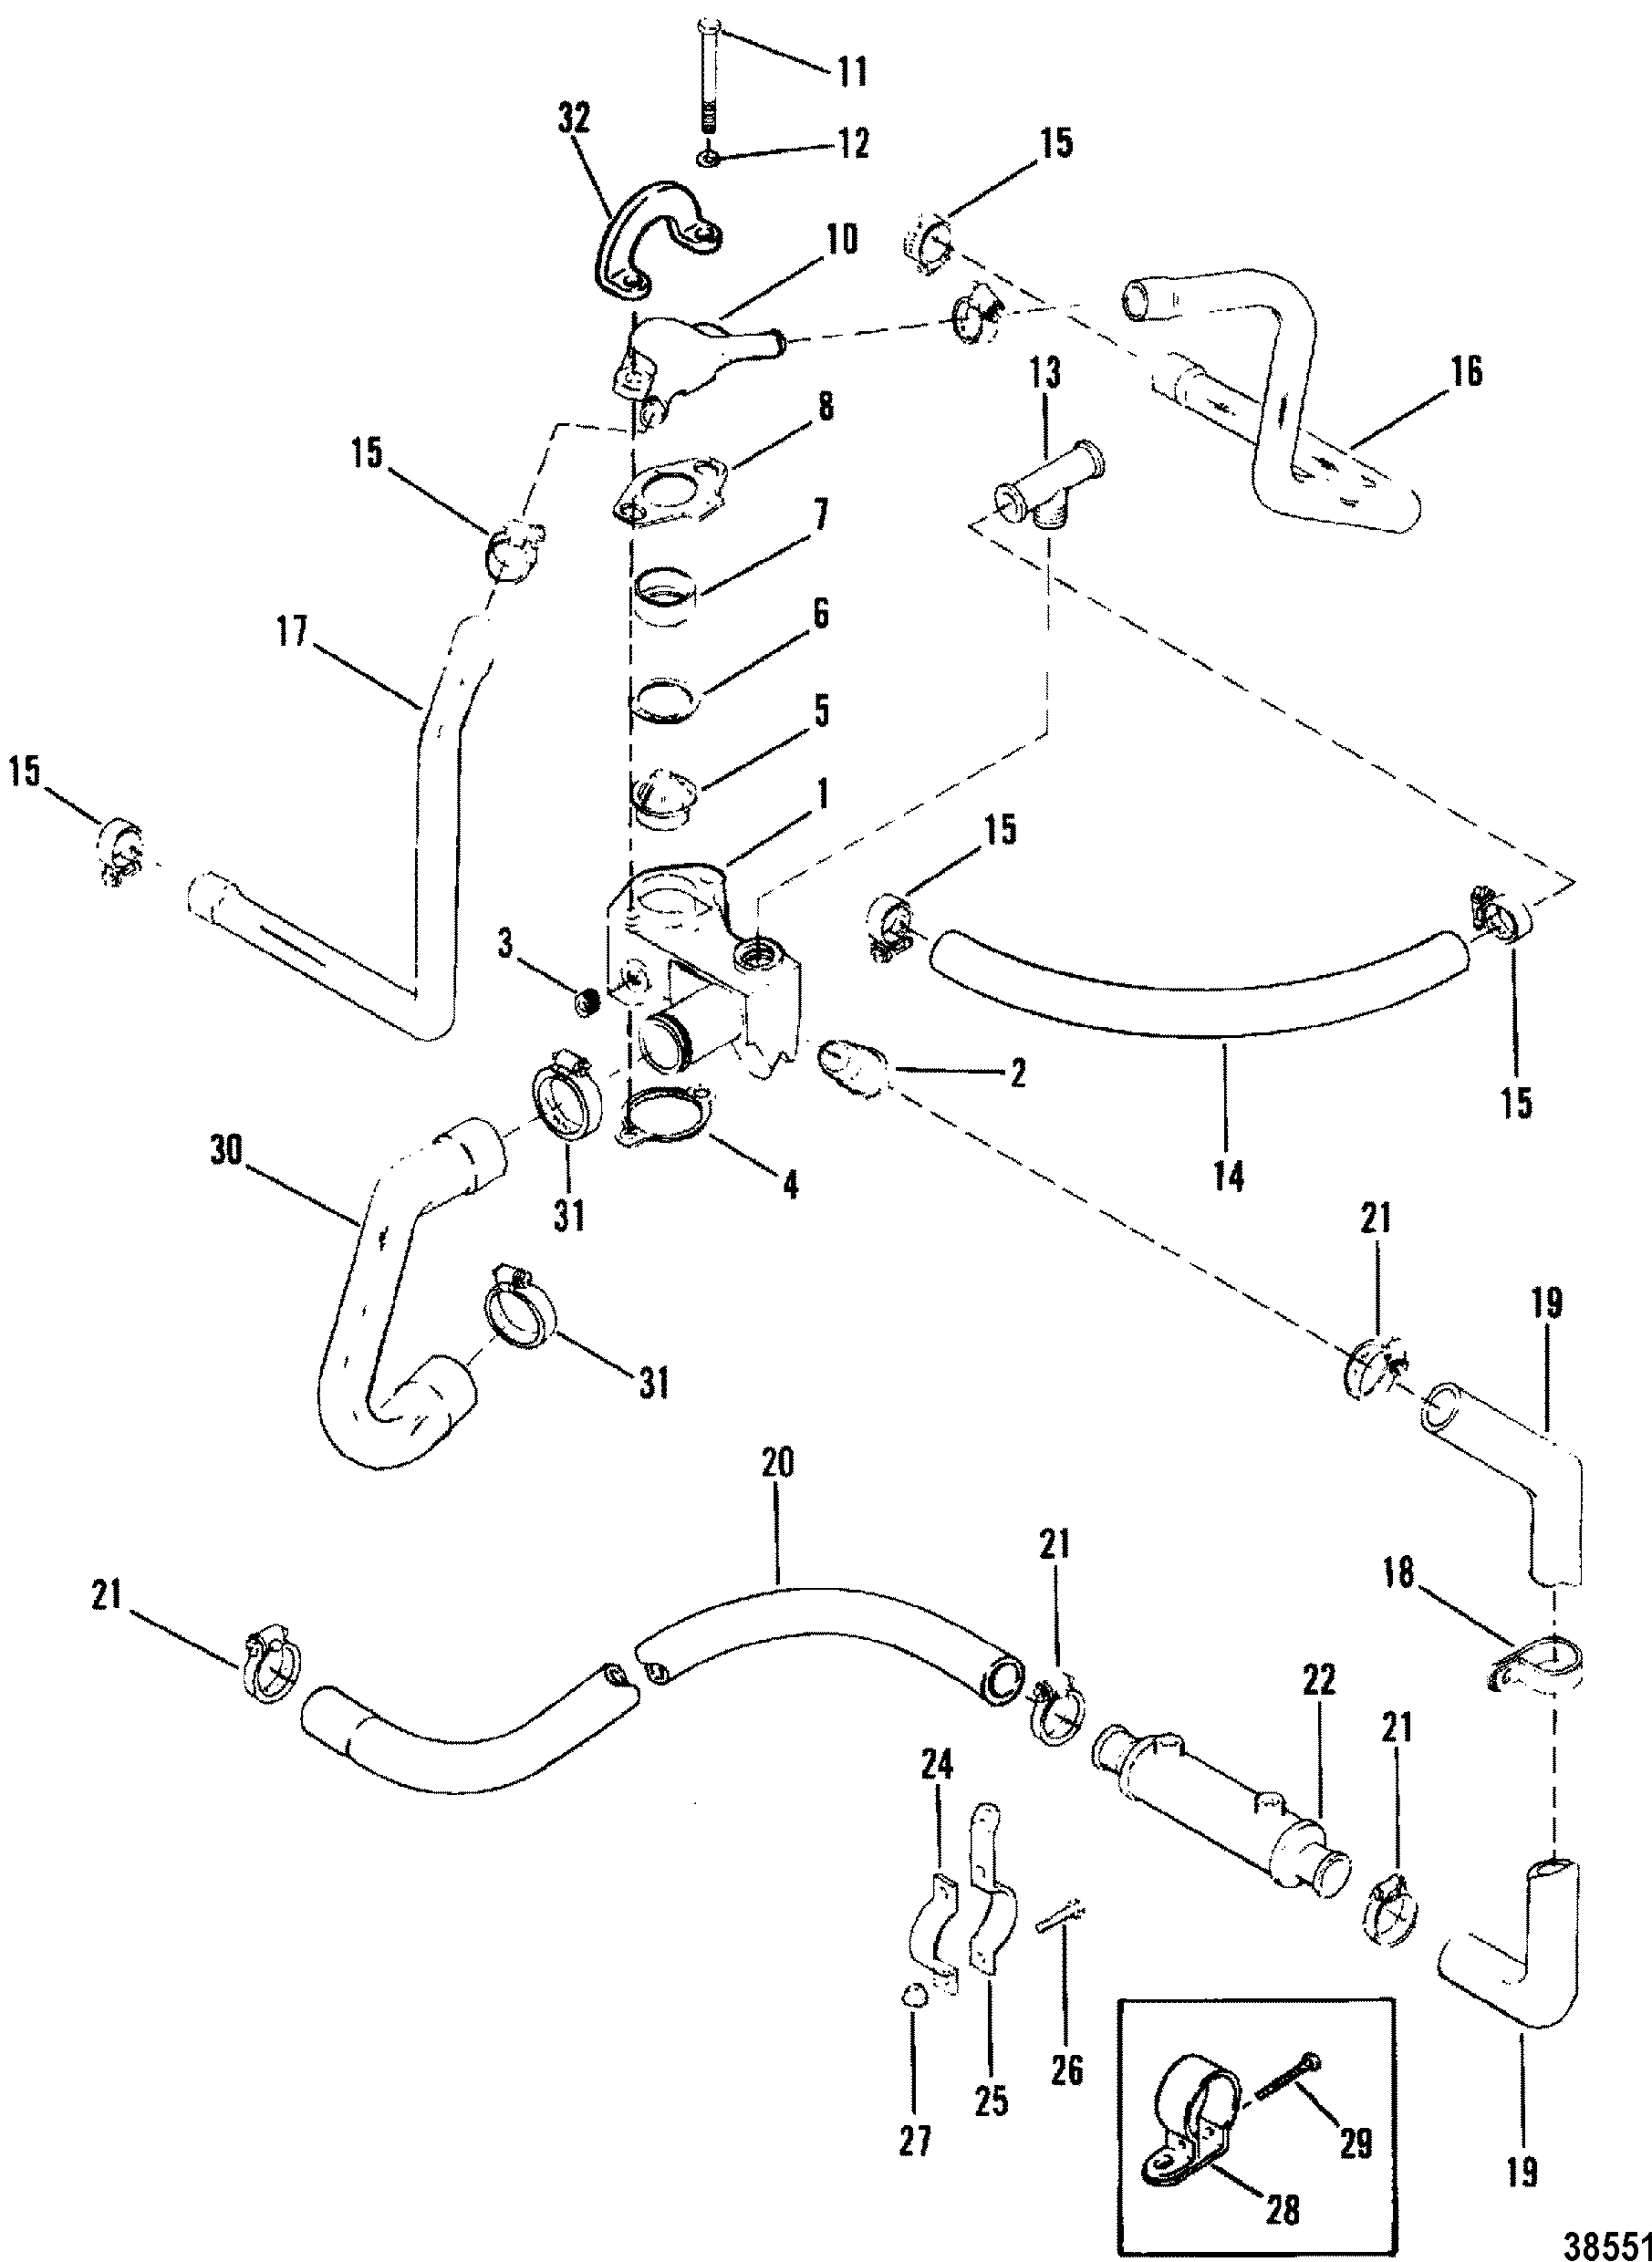 STANDARD COOLING SYSTEM DESIGN I FOR MERCRUISER 200/5.0L